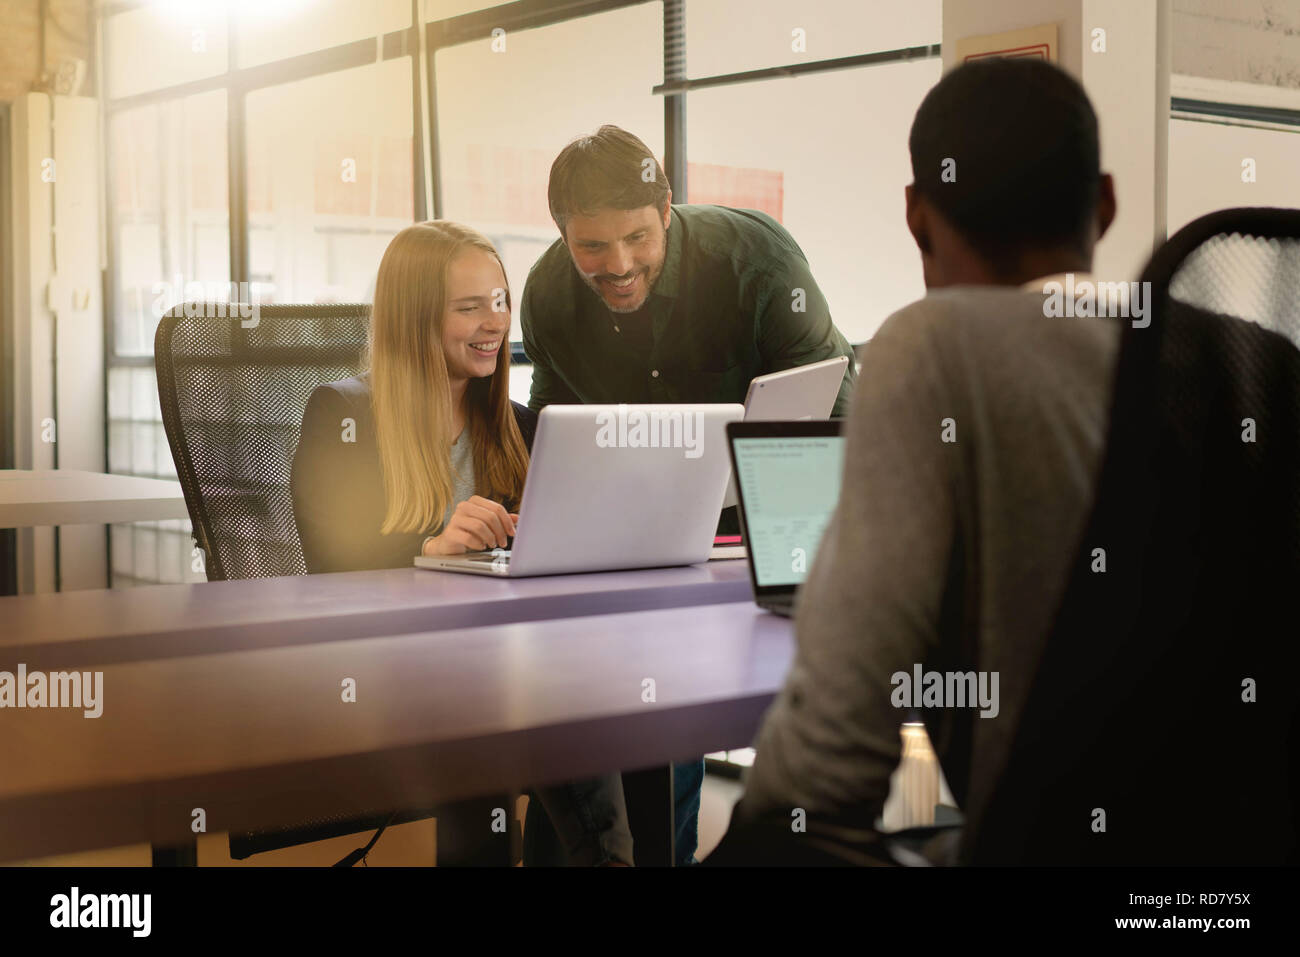 Co workers busy working in modern office space - Stock Image